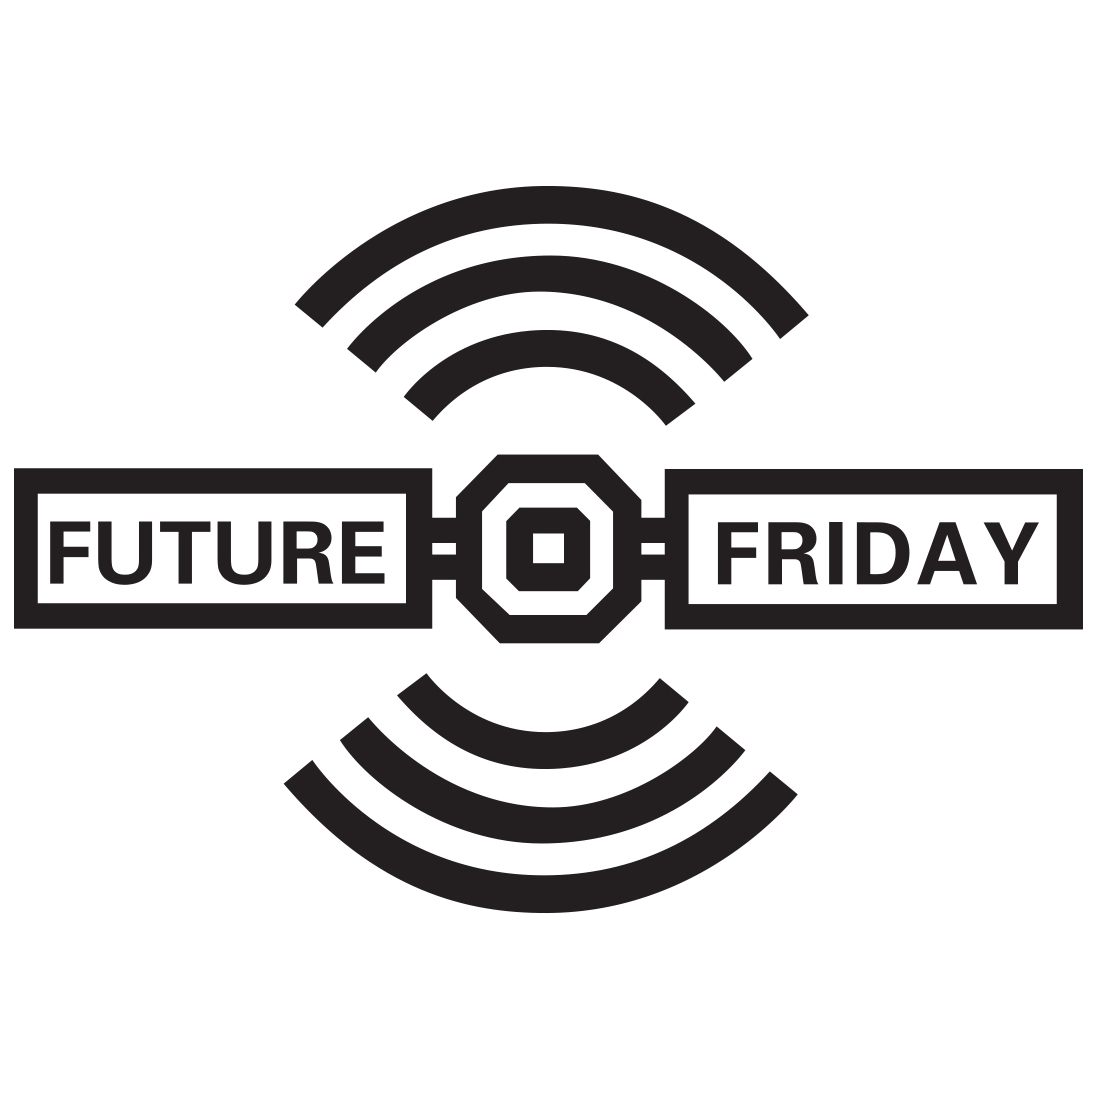 Future Friday